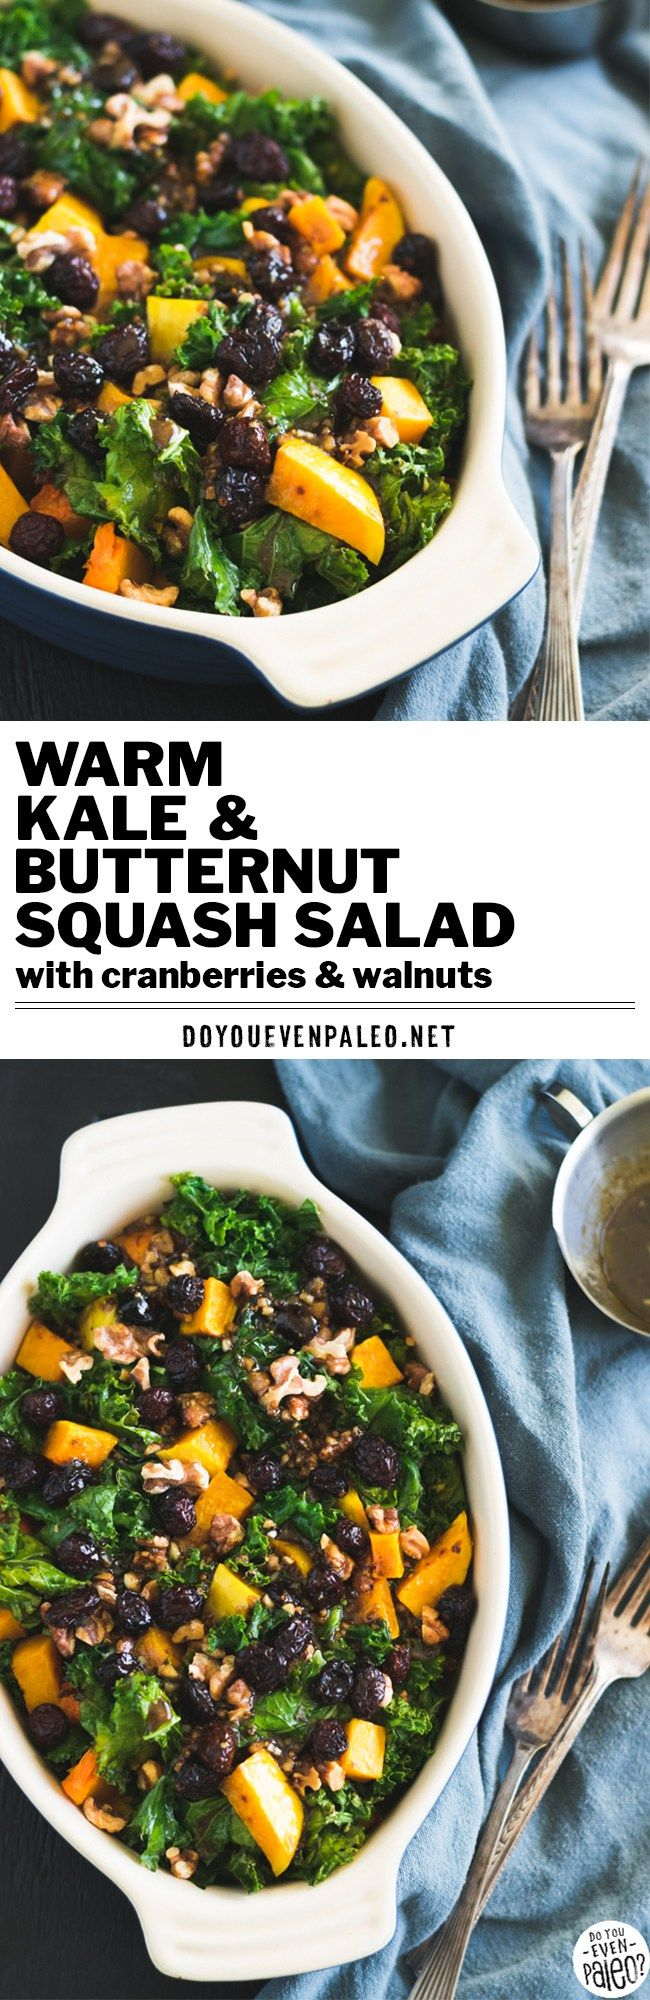 This simple warm kale & butternut squash salad will not disappoint! Packed with fall flavors, it makes a nourishing and colorful side dish. | DoYouEvenPaleo.net #paleo #glutenfree #salad #kale